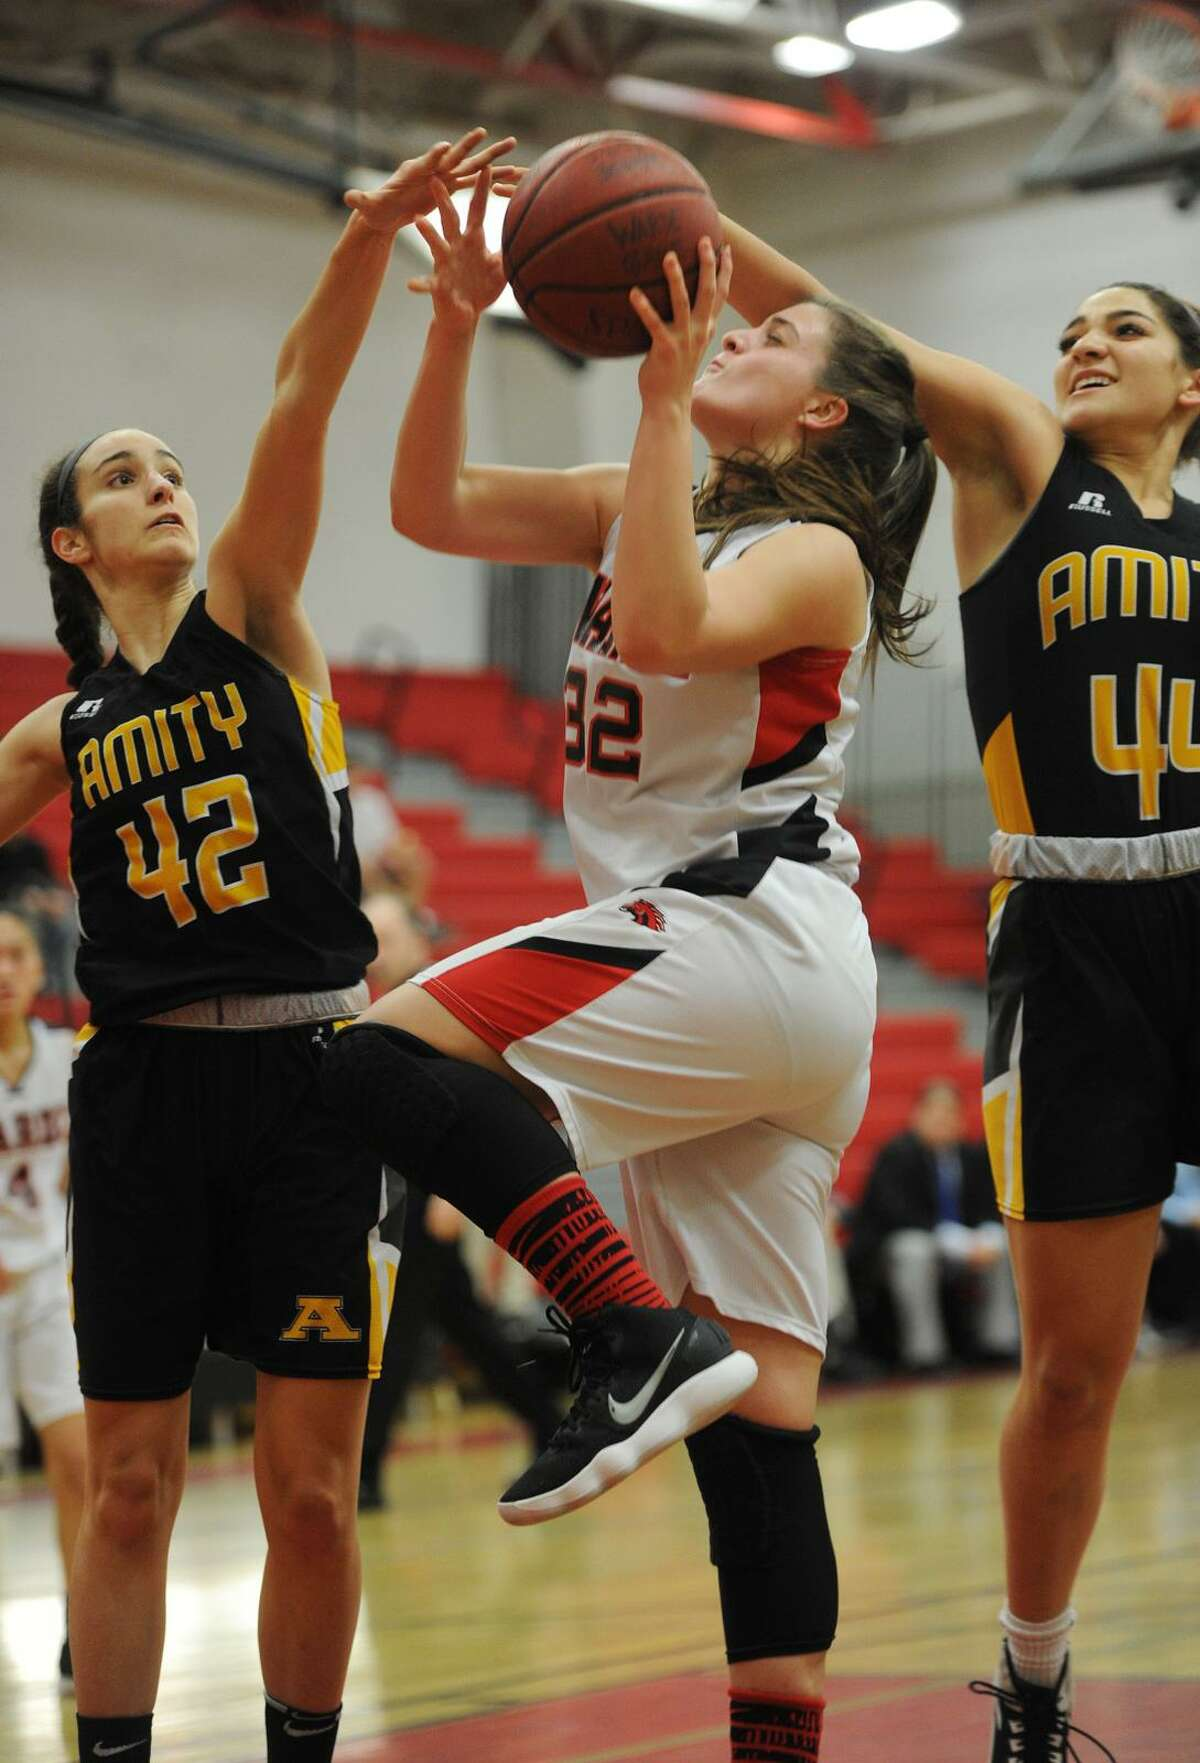 Warde's Olivia Parisi tries to shoot through the blocks of Amity defenders Amanda Granados, left, and Hayley Esparo in the first half of Monday night's game at Warde High School in Fairfield.